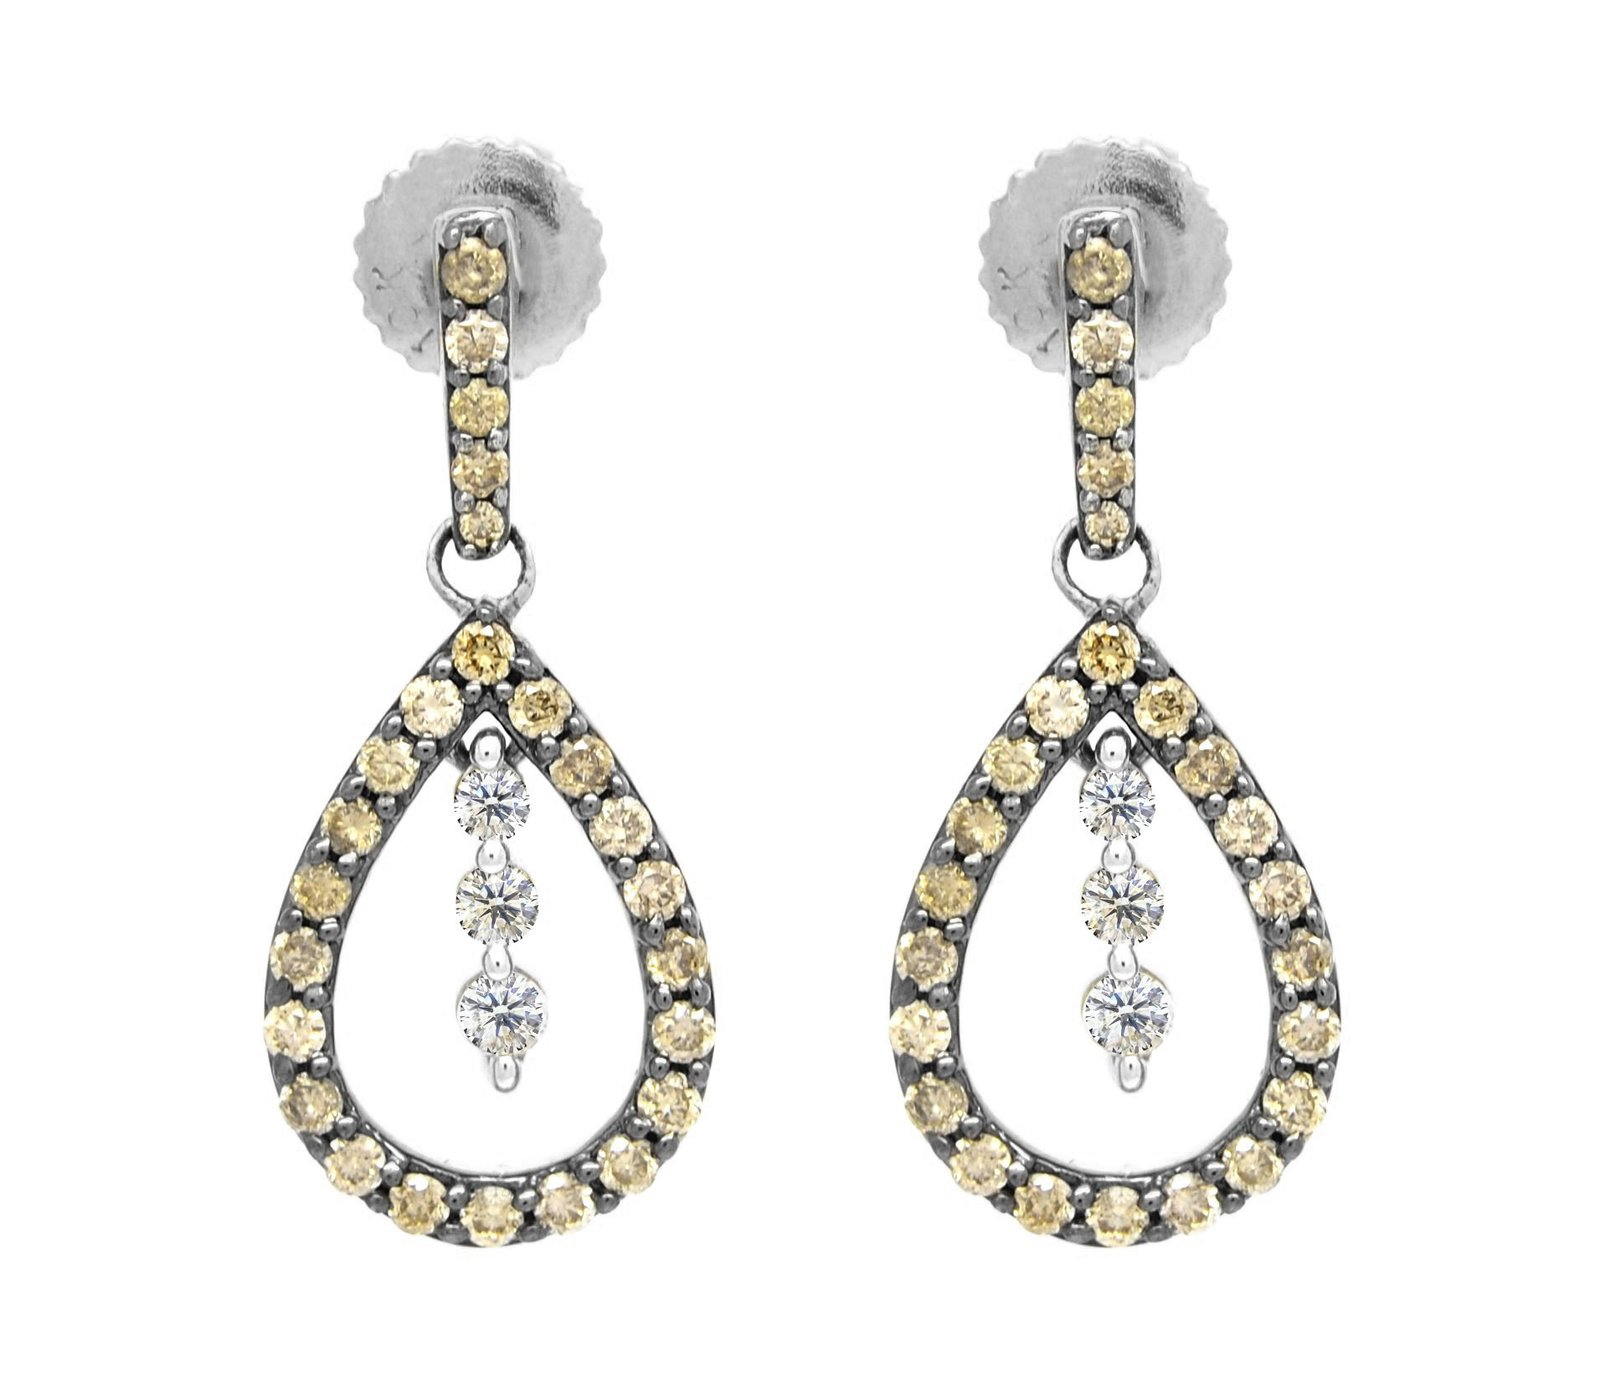 10K Gold 0.50 Ct White and Brown Diamond Dangling Pear Shaped Earrings (white-go